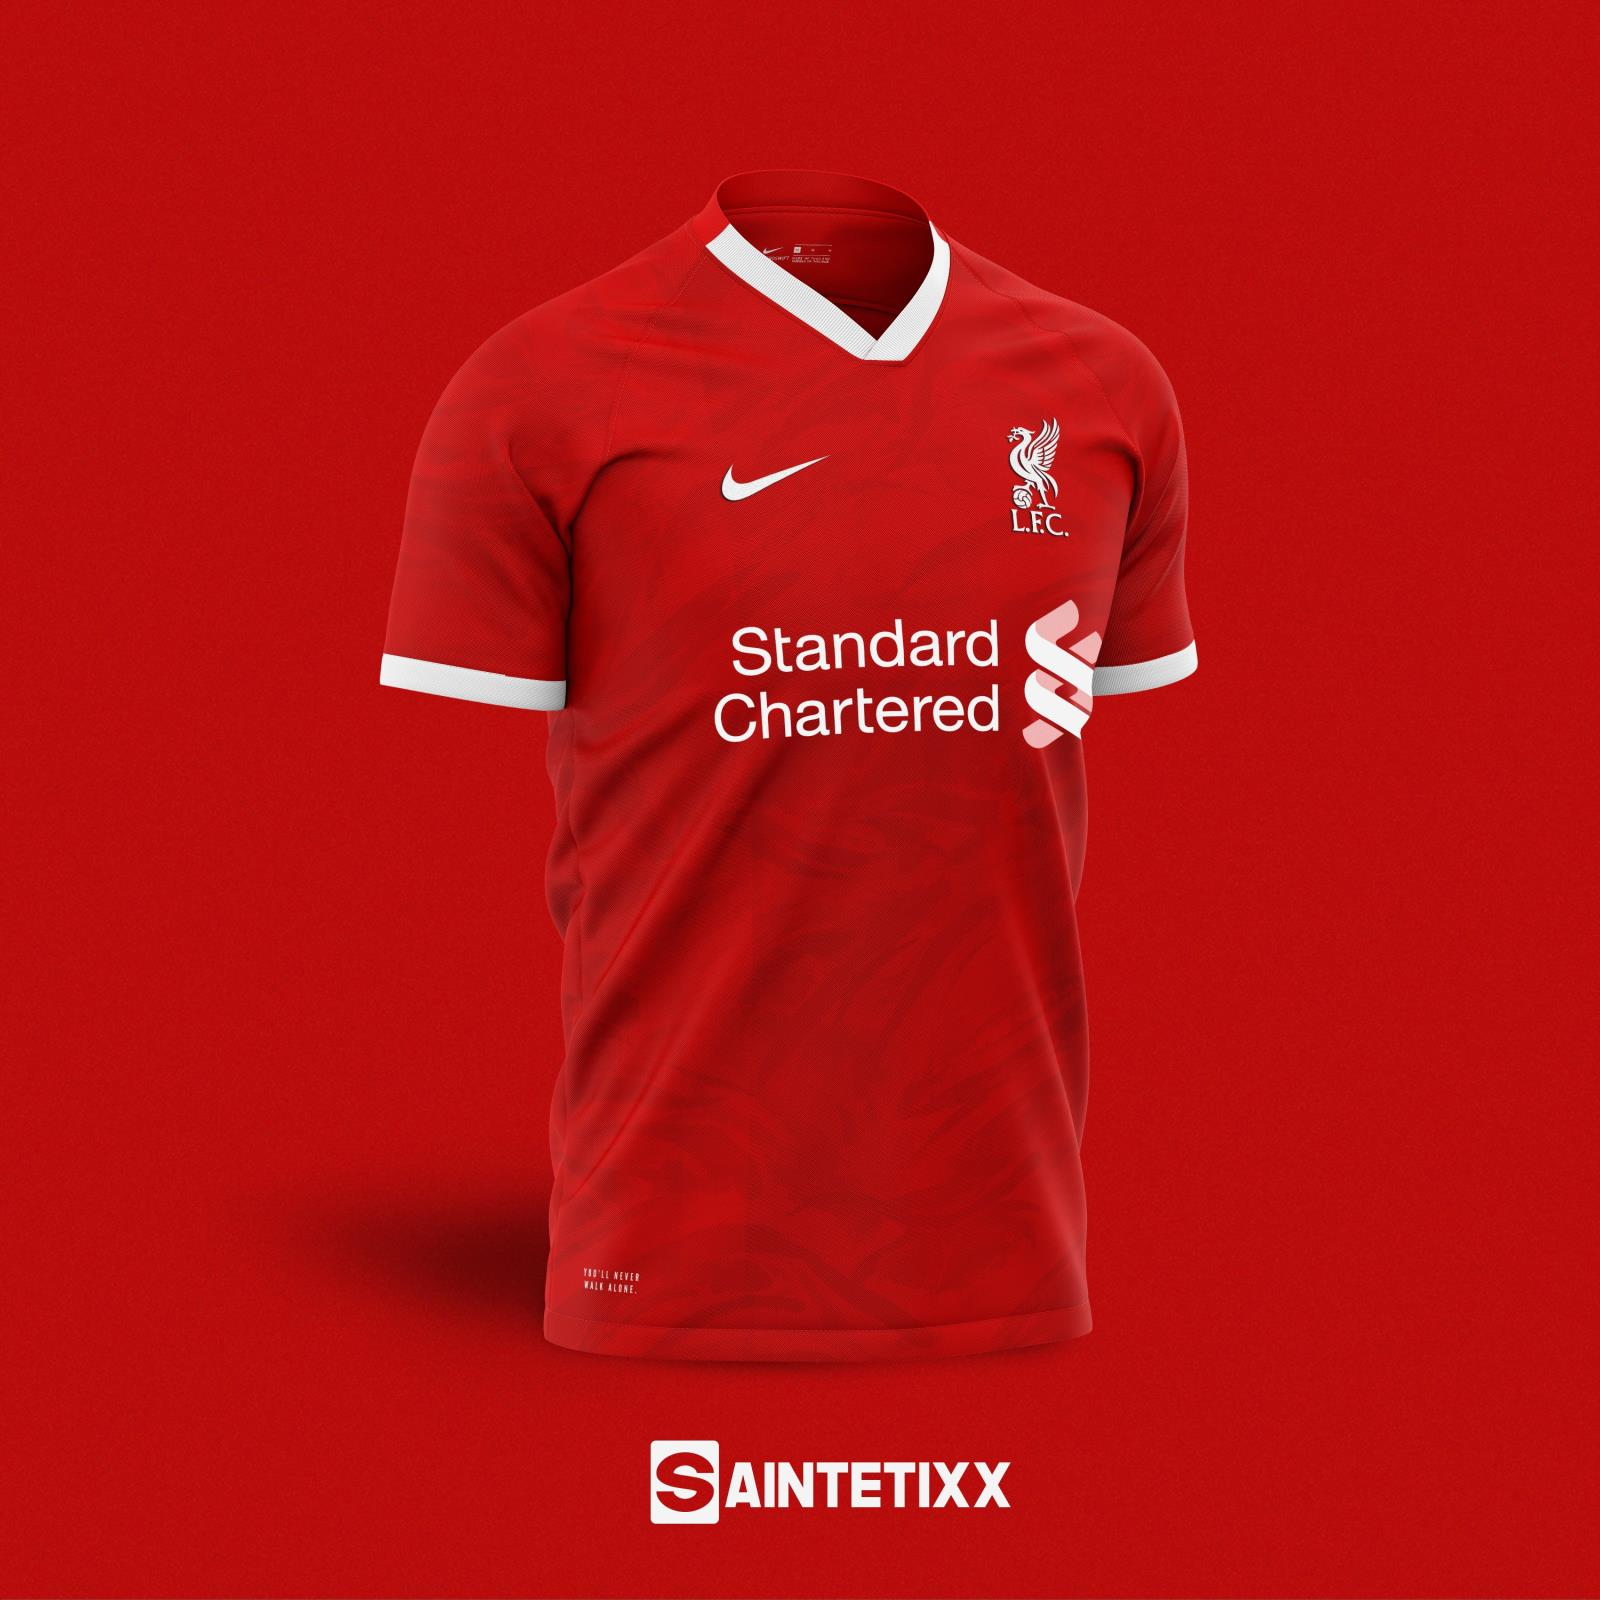 Merch Distributor T-shirt Liverpool FC YNWA